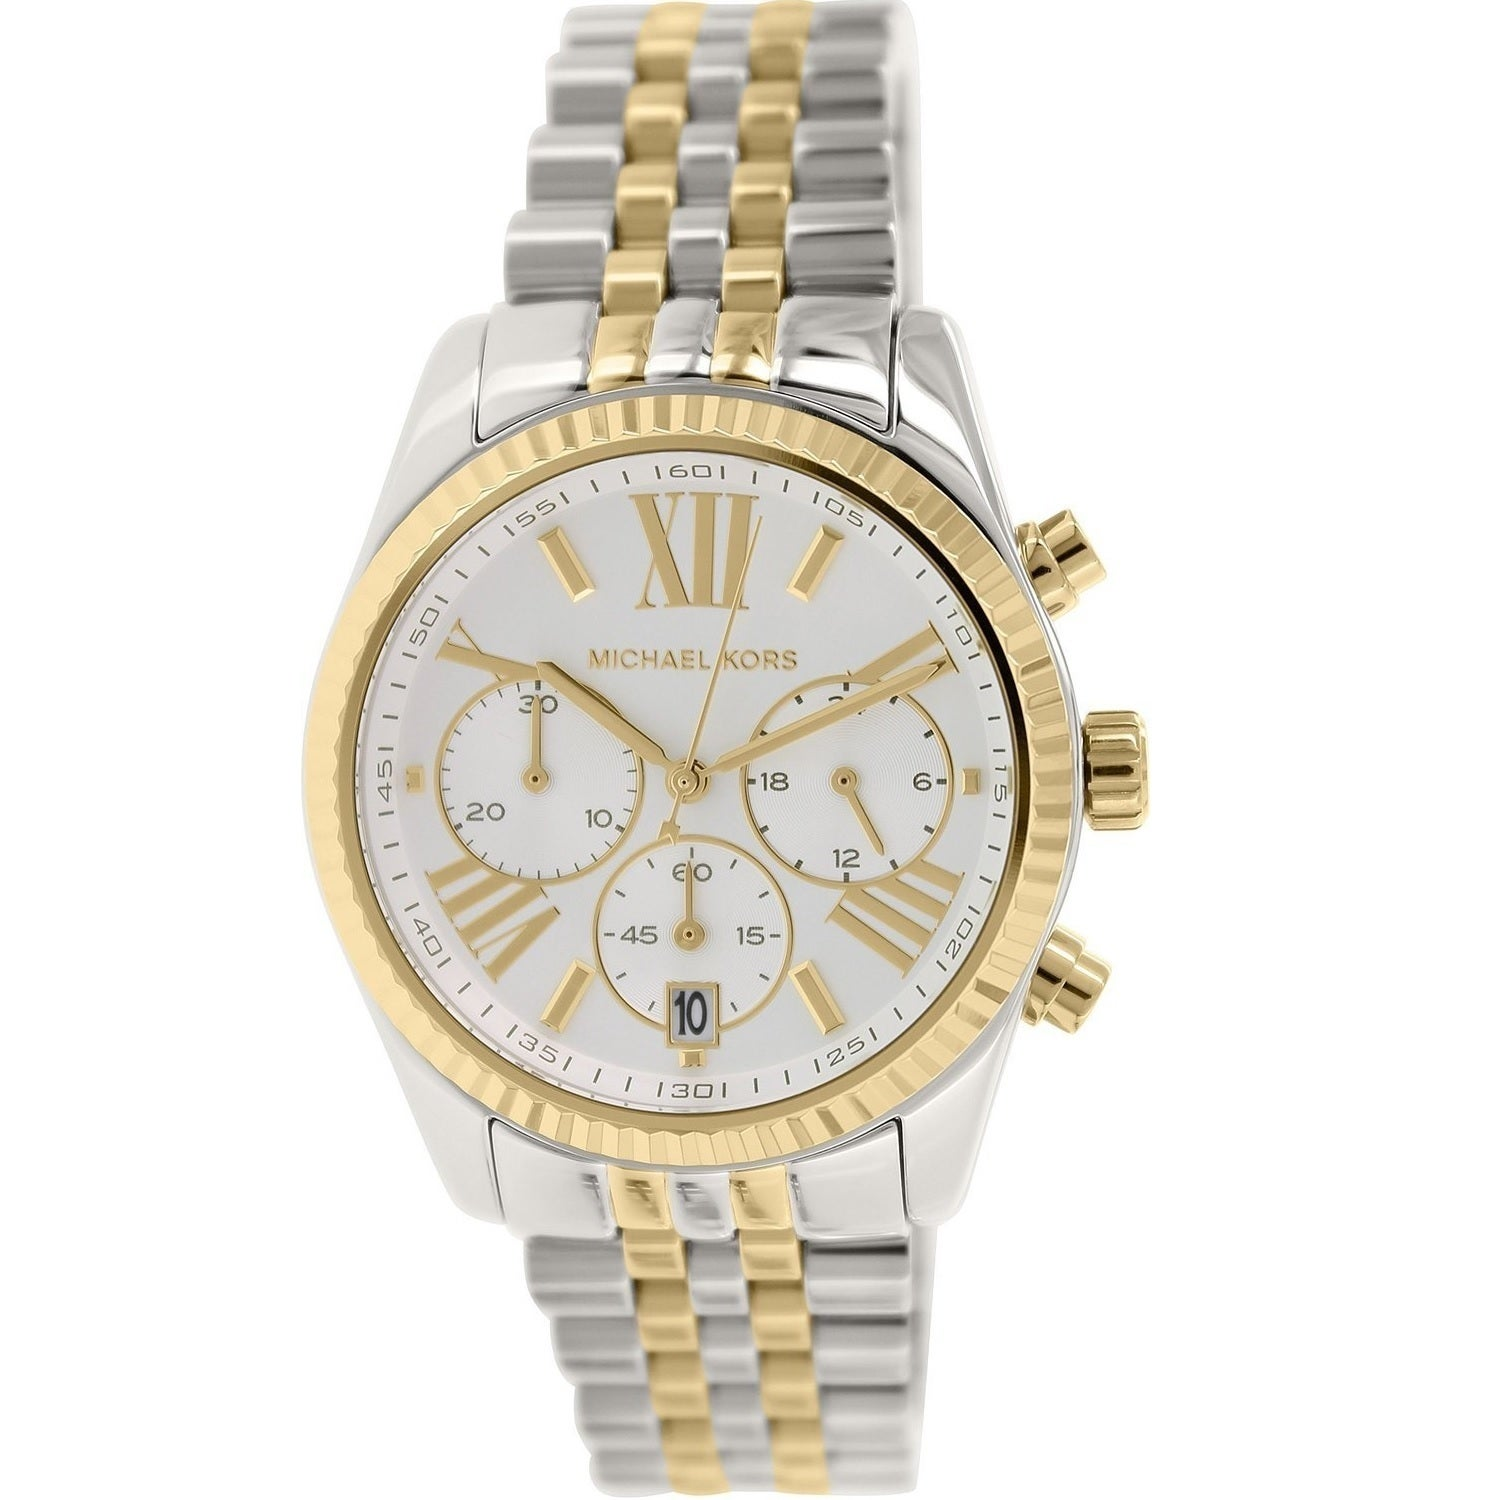 1fb075d729dc Shop Michael Kors Women s  Lexington  Chronograph Two Tone Stainless Steel  Watch - Free Shipping Today - Overstock - 9755911